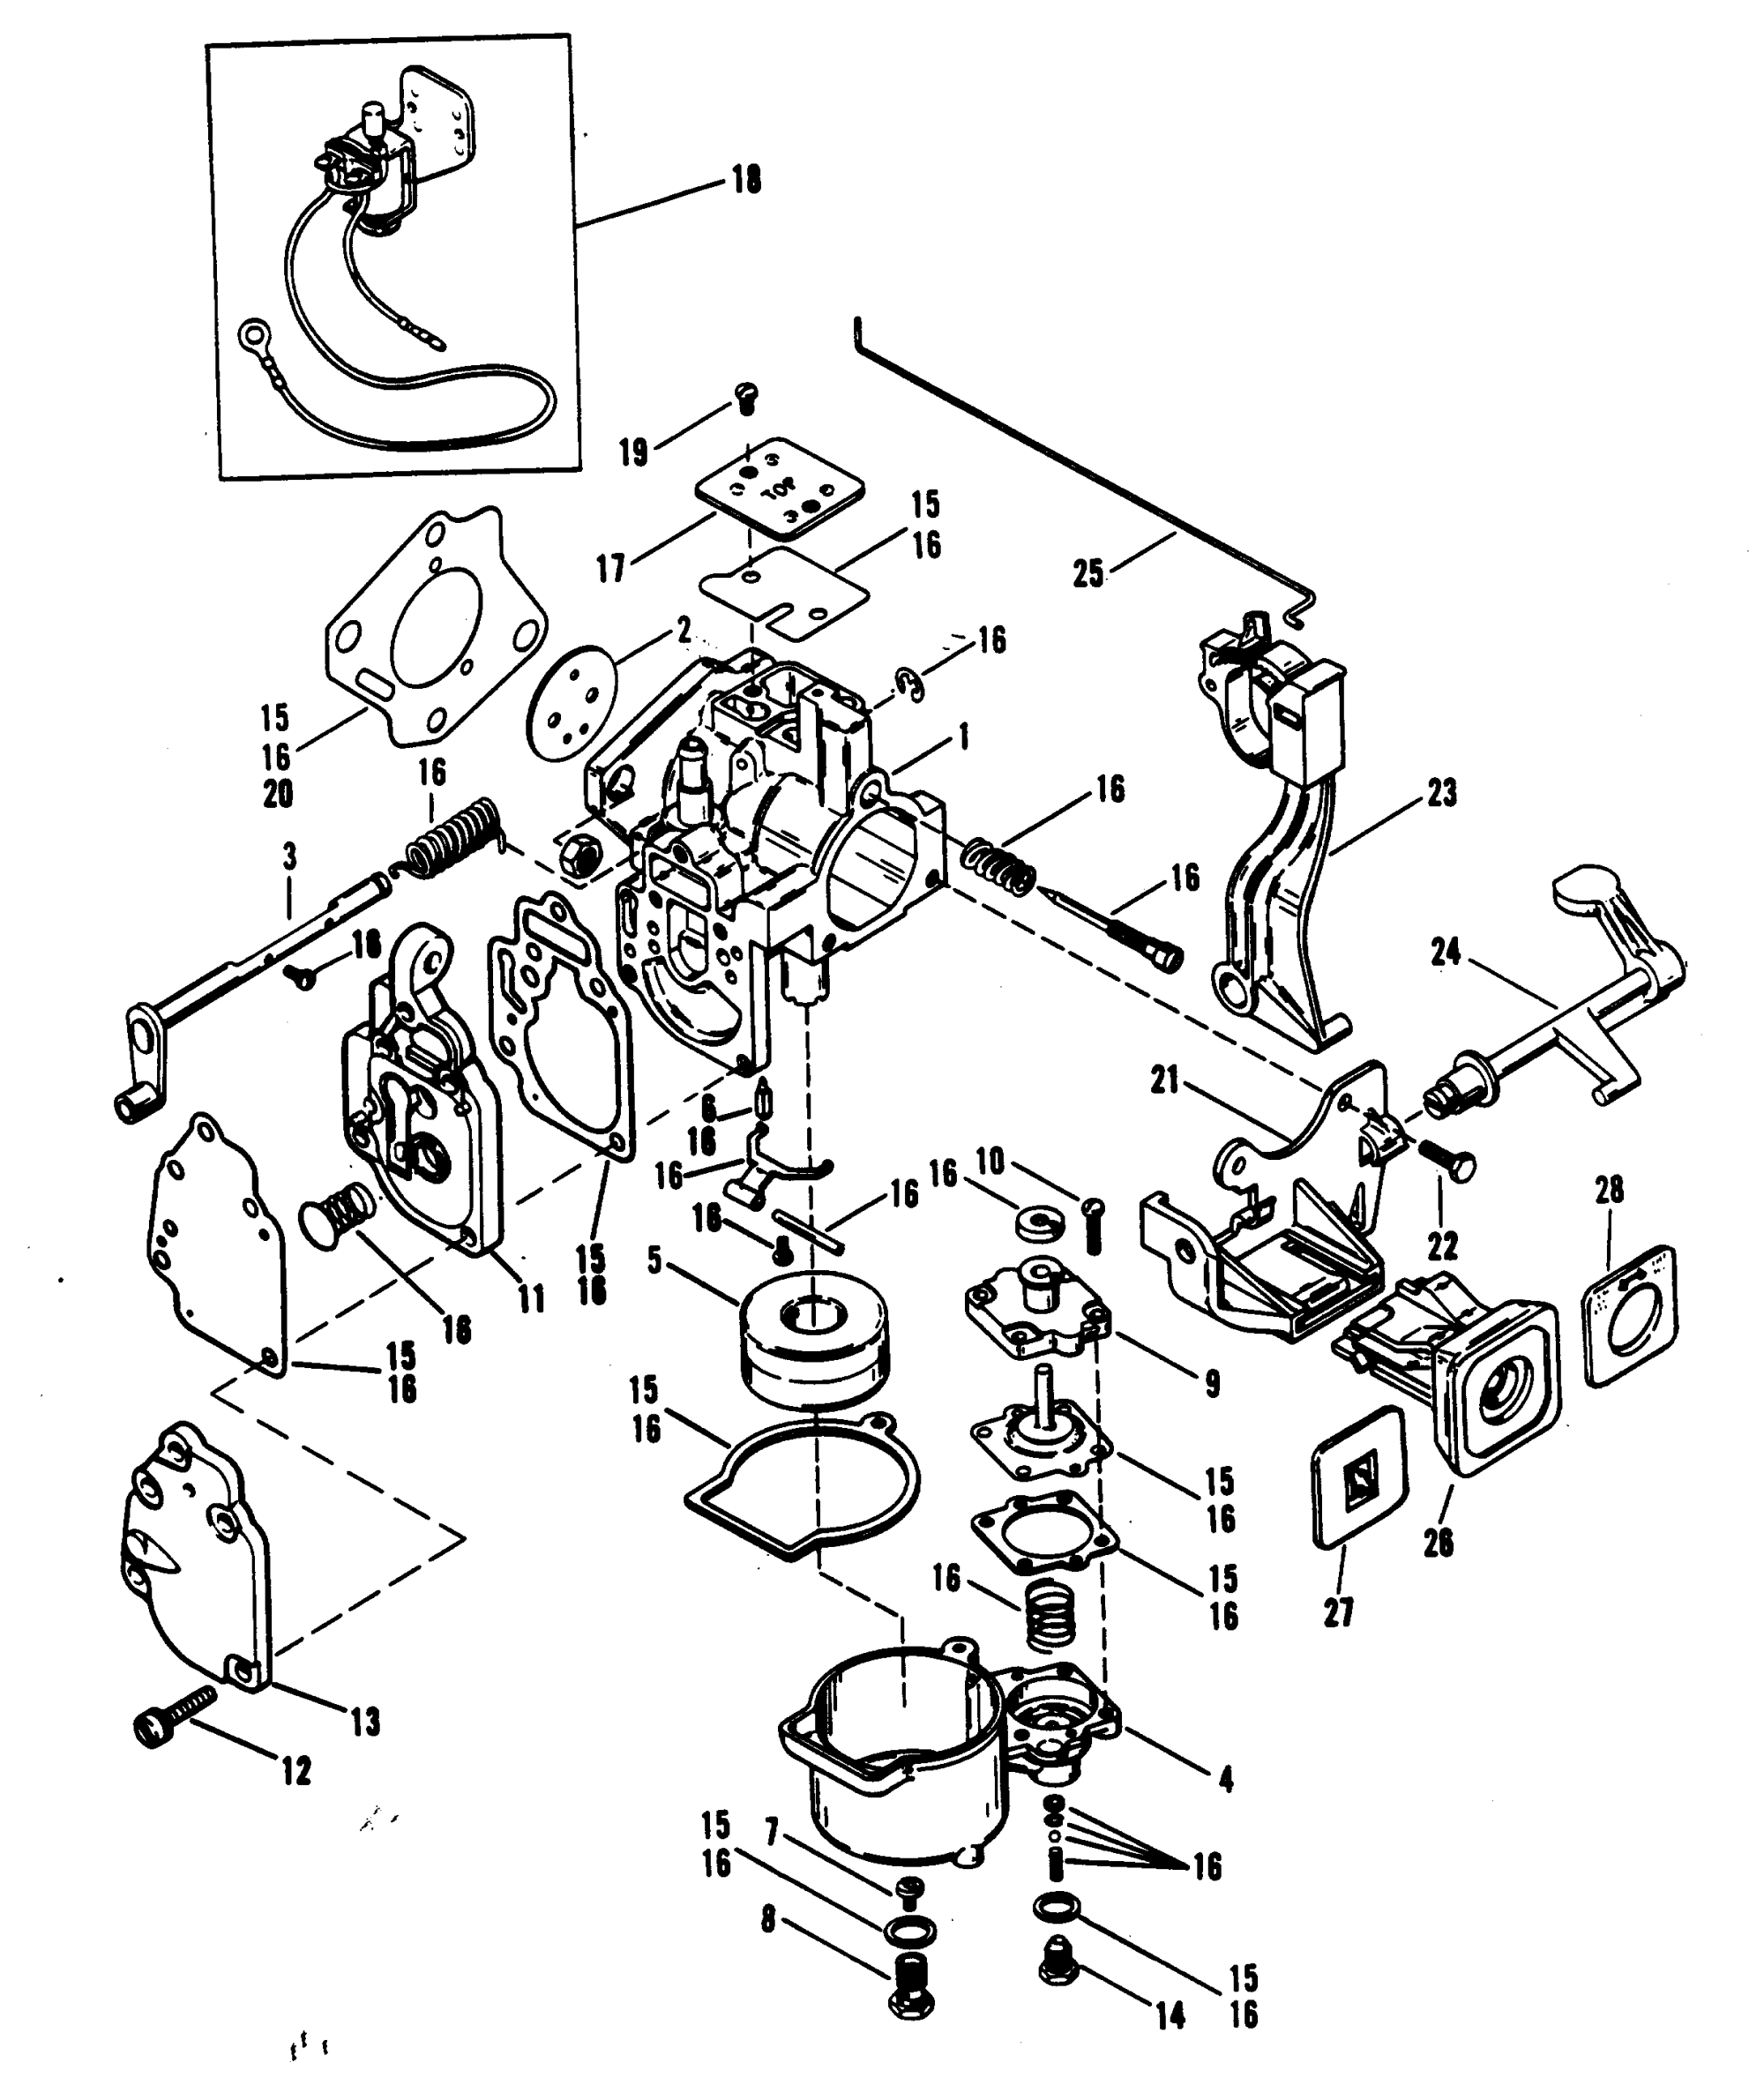 hight resolution of mercury carb diagram wiring diagram expert 9 9 mercury 2 stroke carb diagram